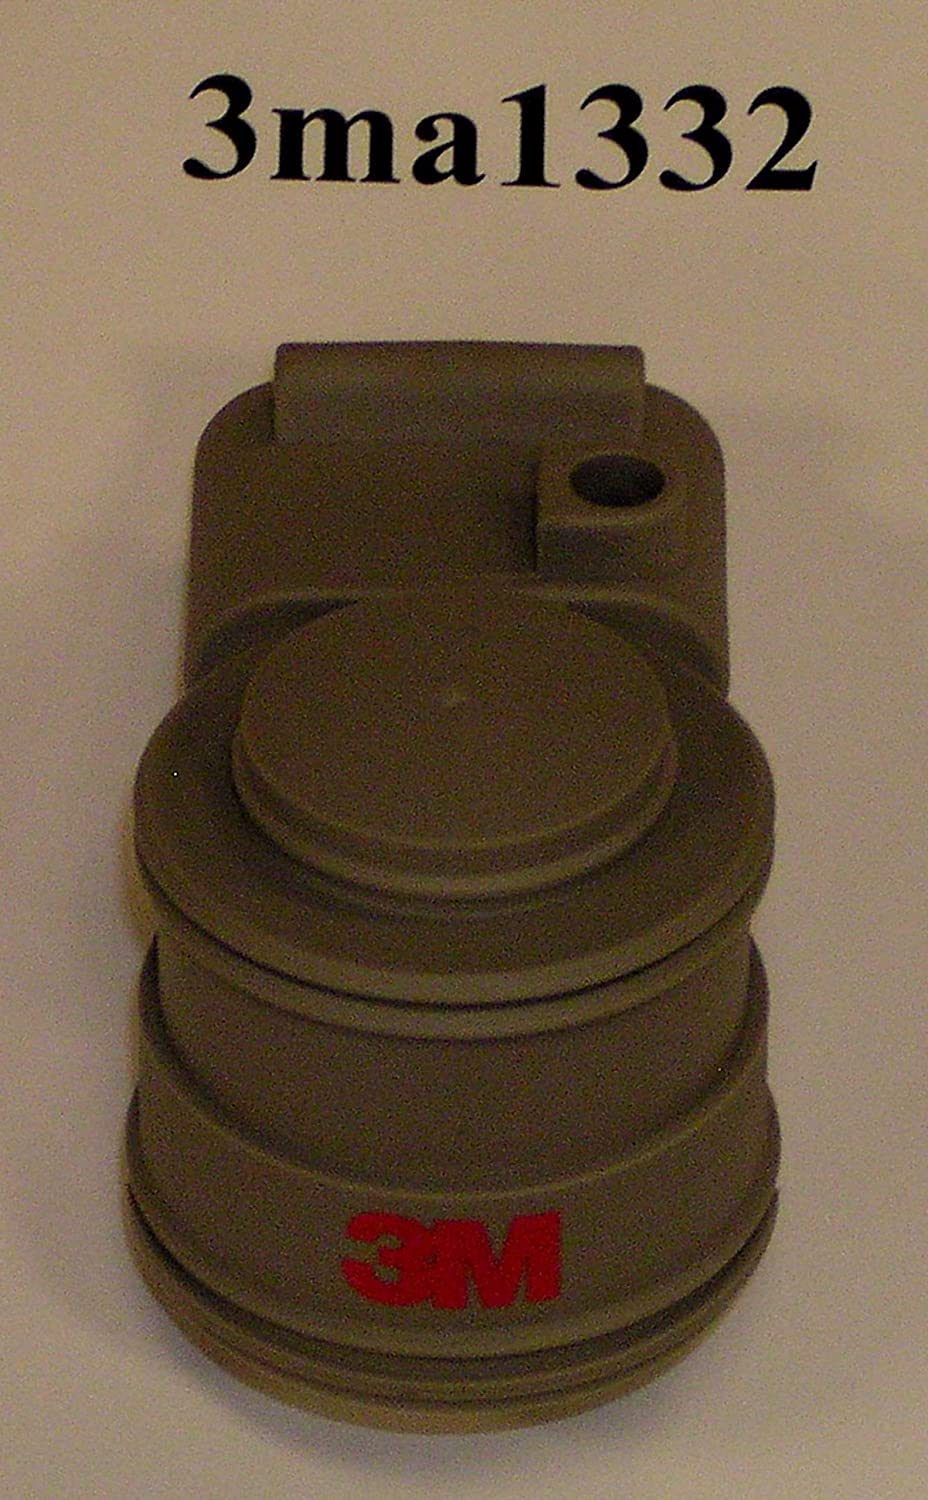 3M Random Orbital Sander Housing A1332, 3 in, 1 per case 81YgWhsSy7L